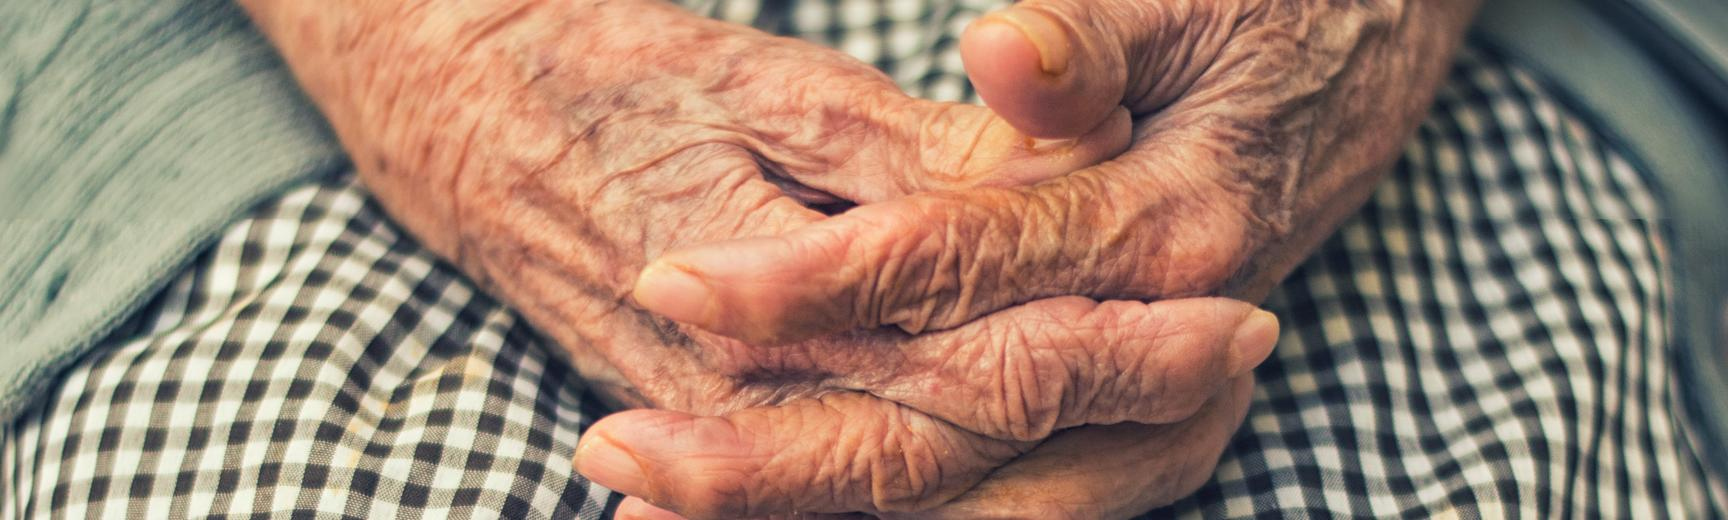 Focus on an older woman's hands